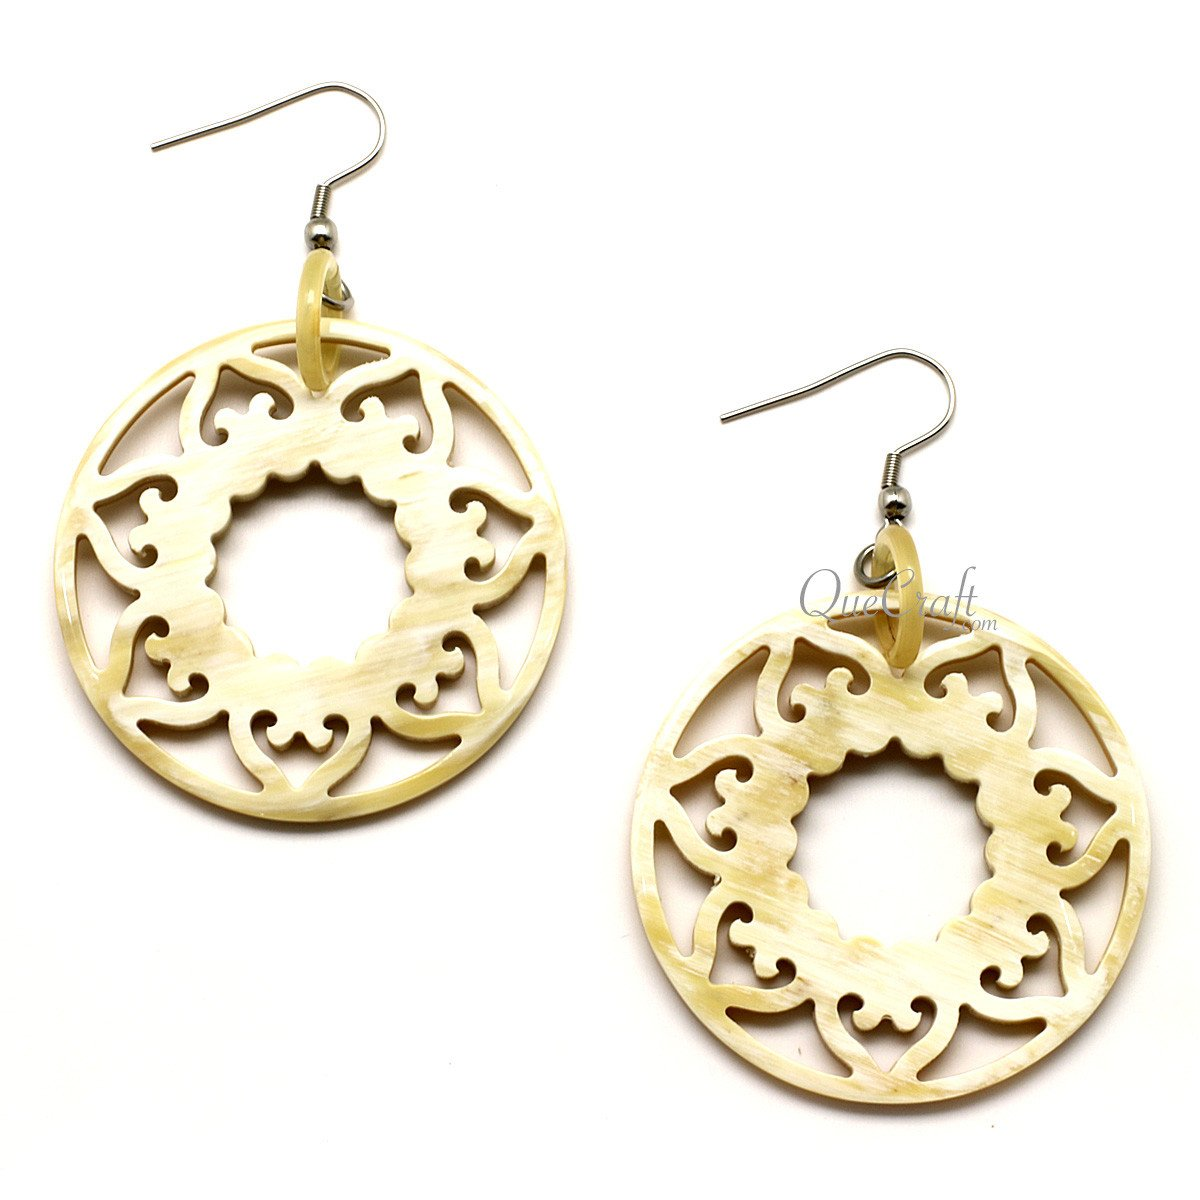 Horn Earrings #12357 - HORN.JEWELRY